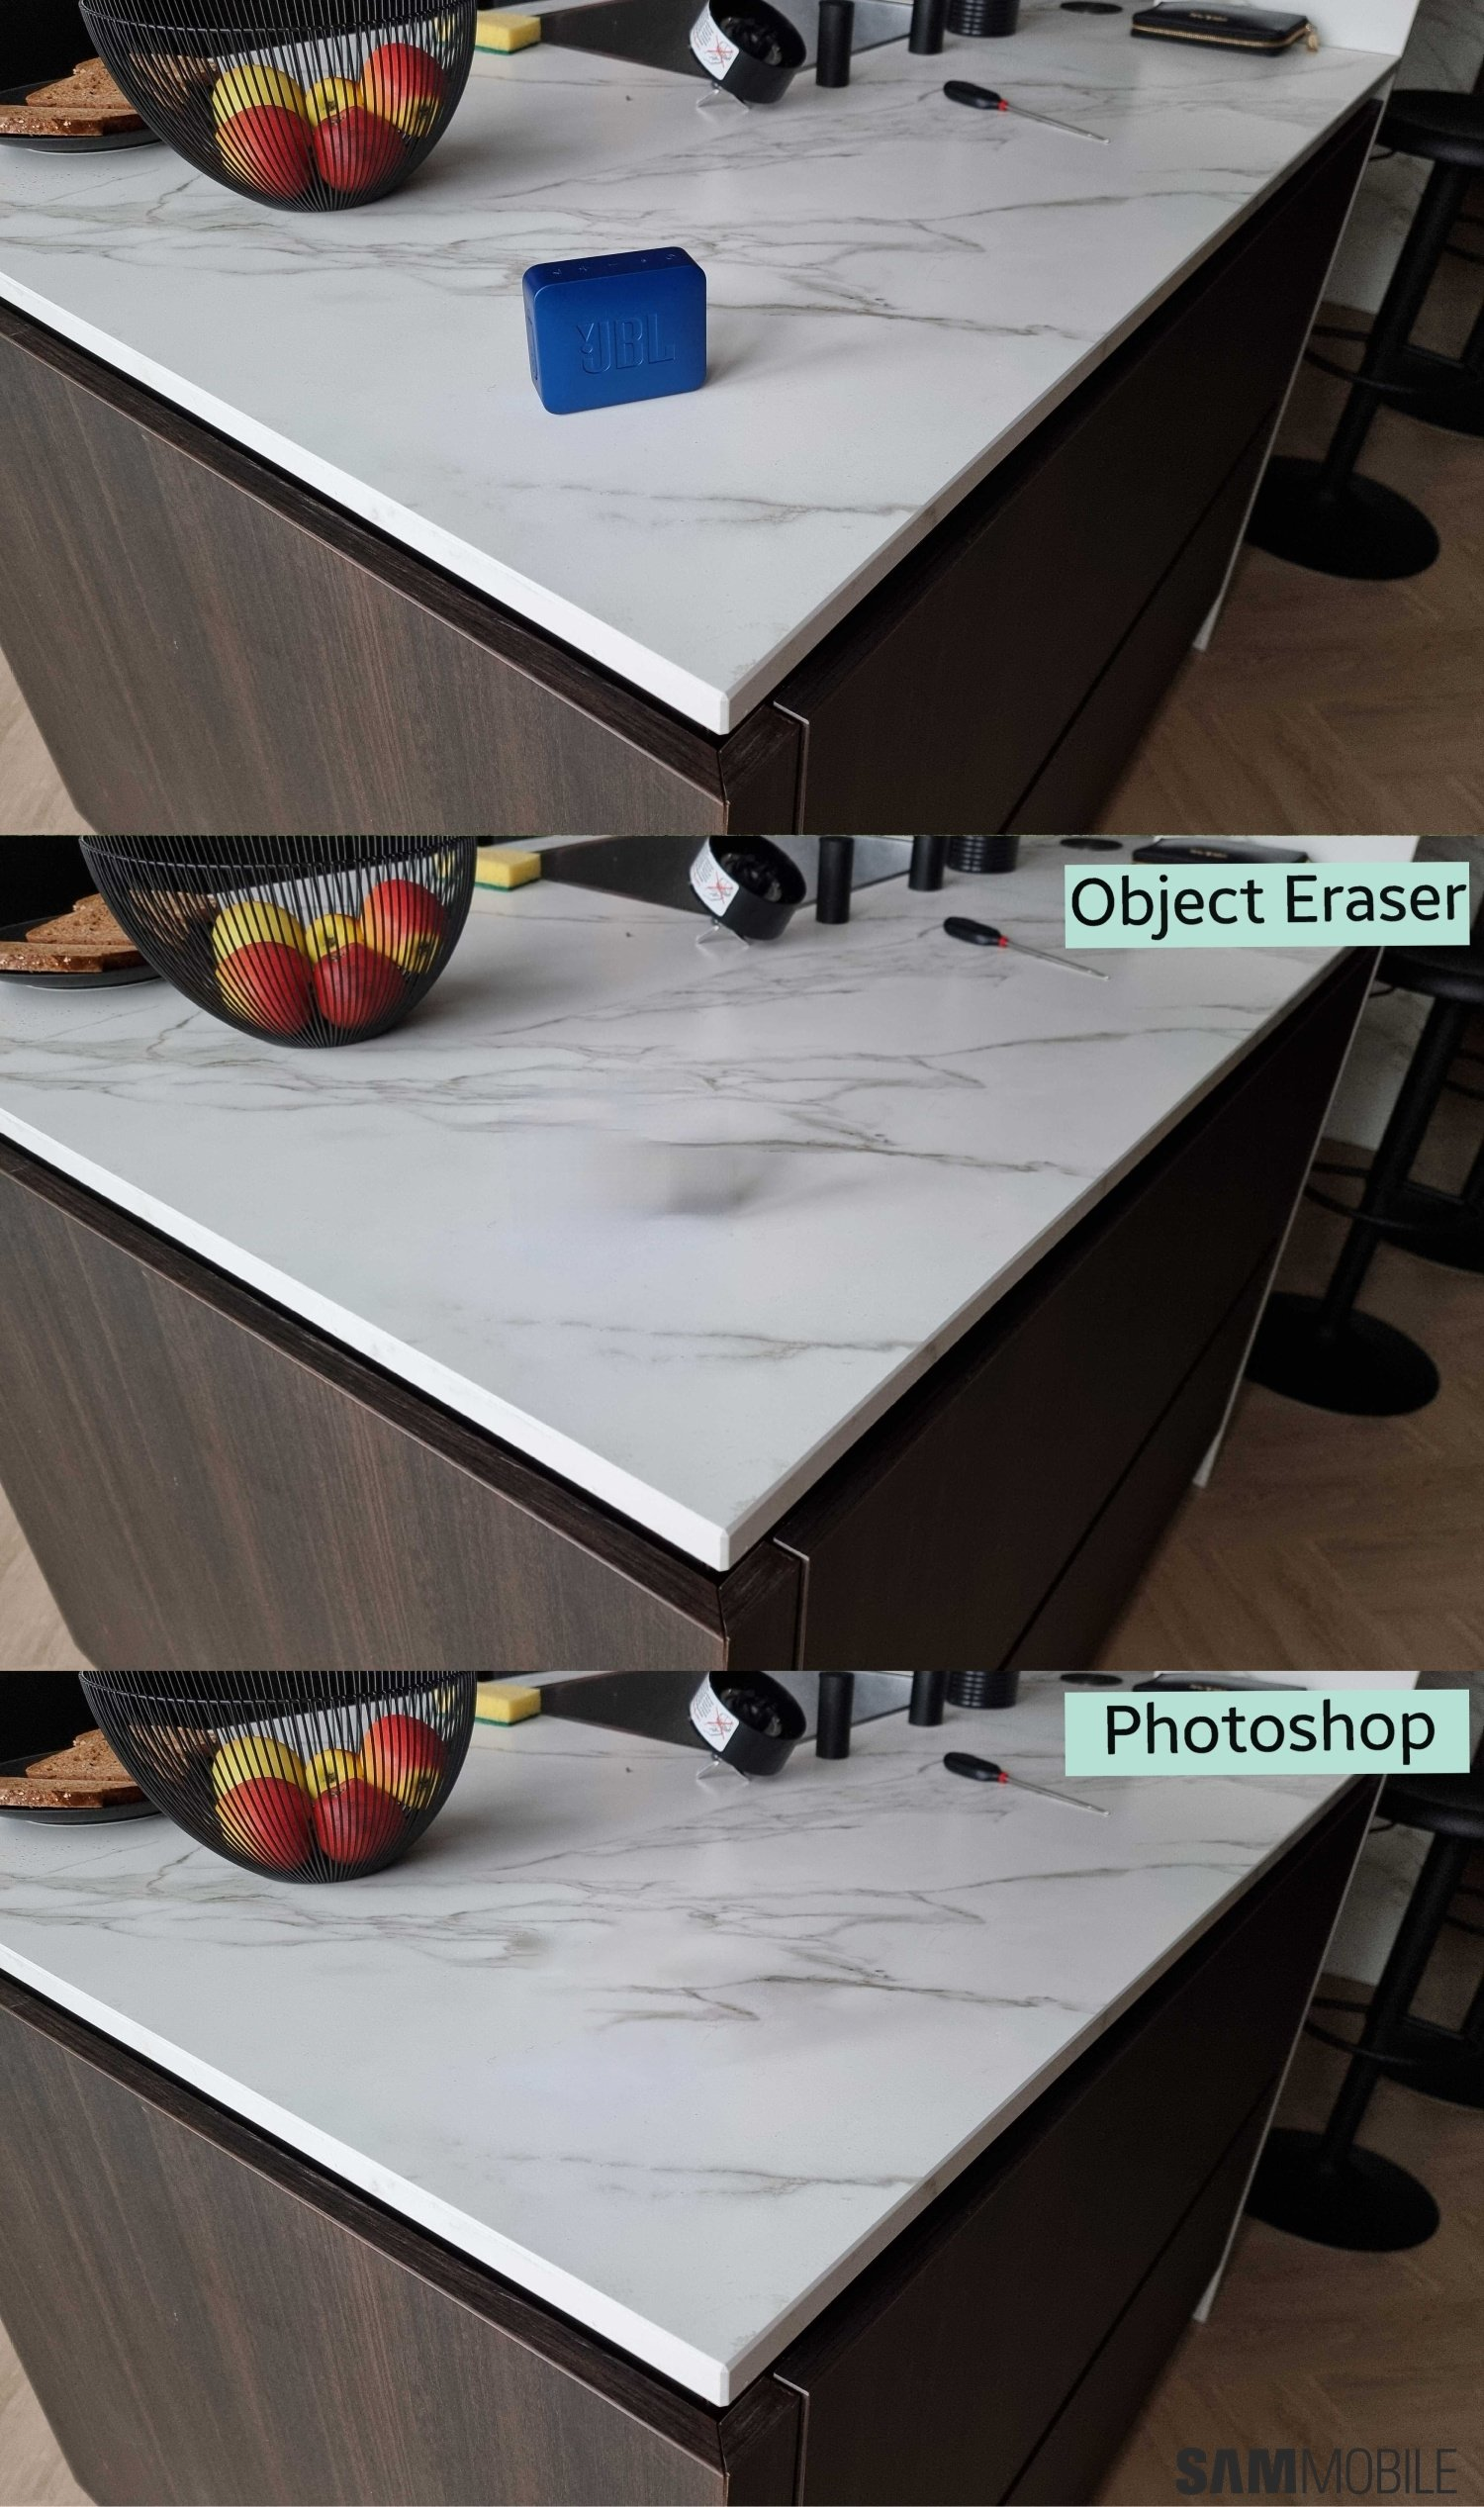 Galaxy S21 Object Eraser vs Photoshop: Does Samsung's AI hold its own?